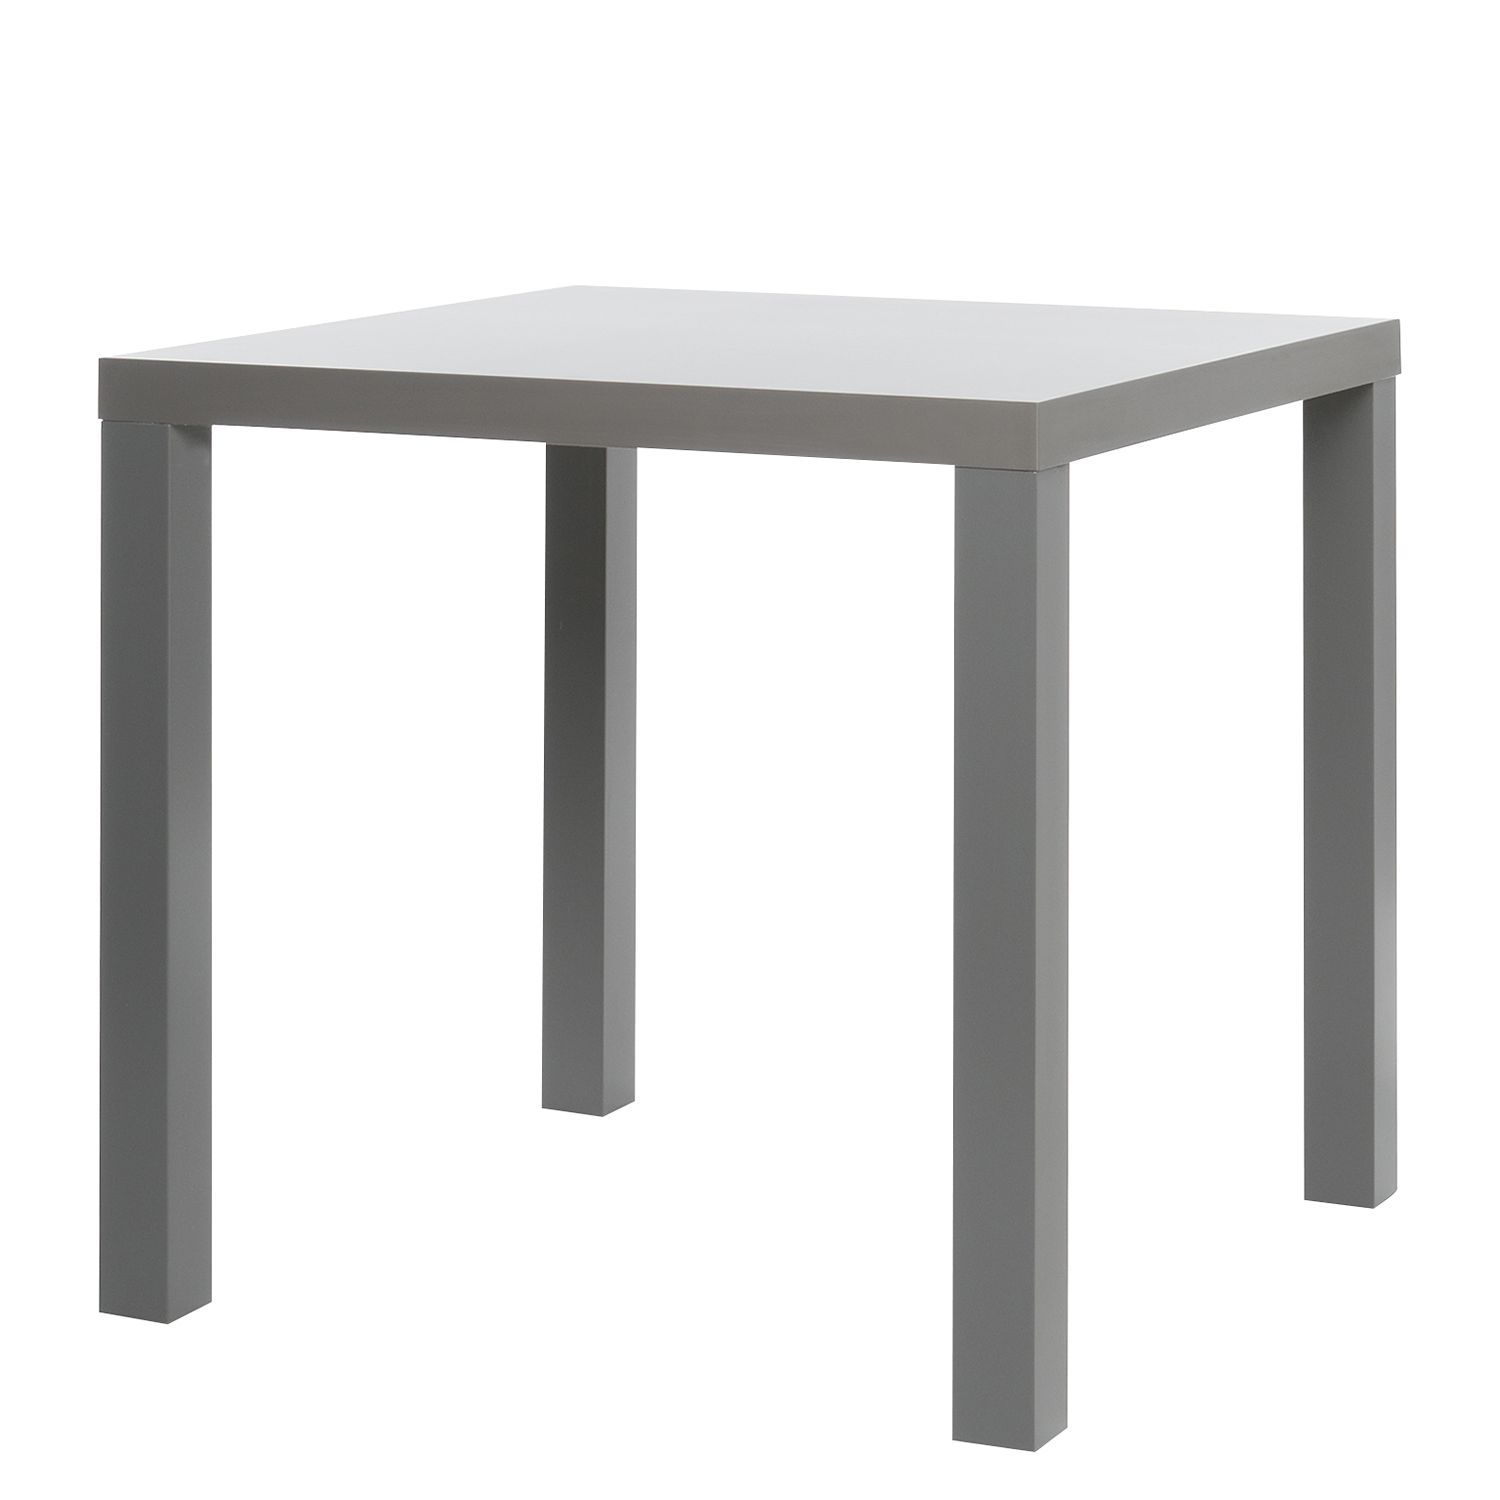 Table à manger Pamati - Gris - 80 x 80 cm, mooved